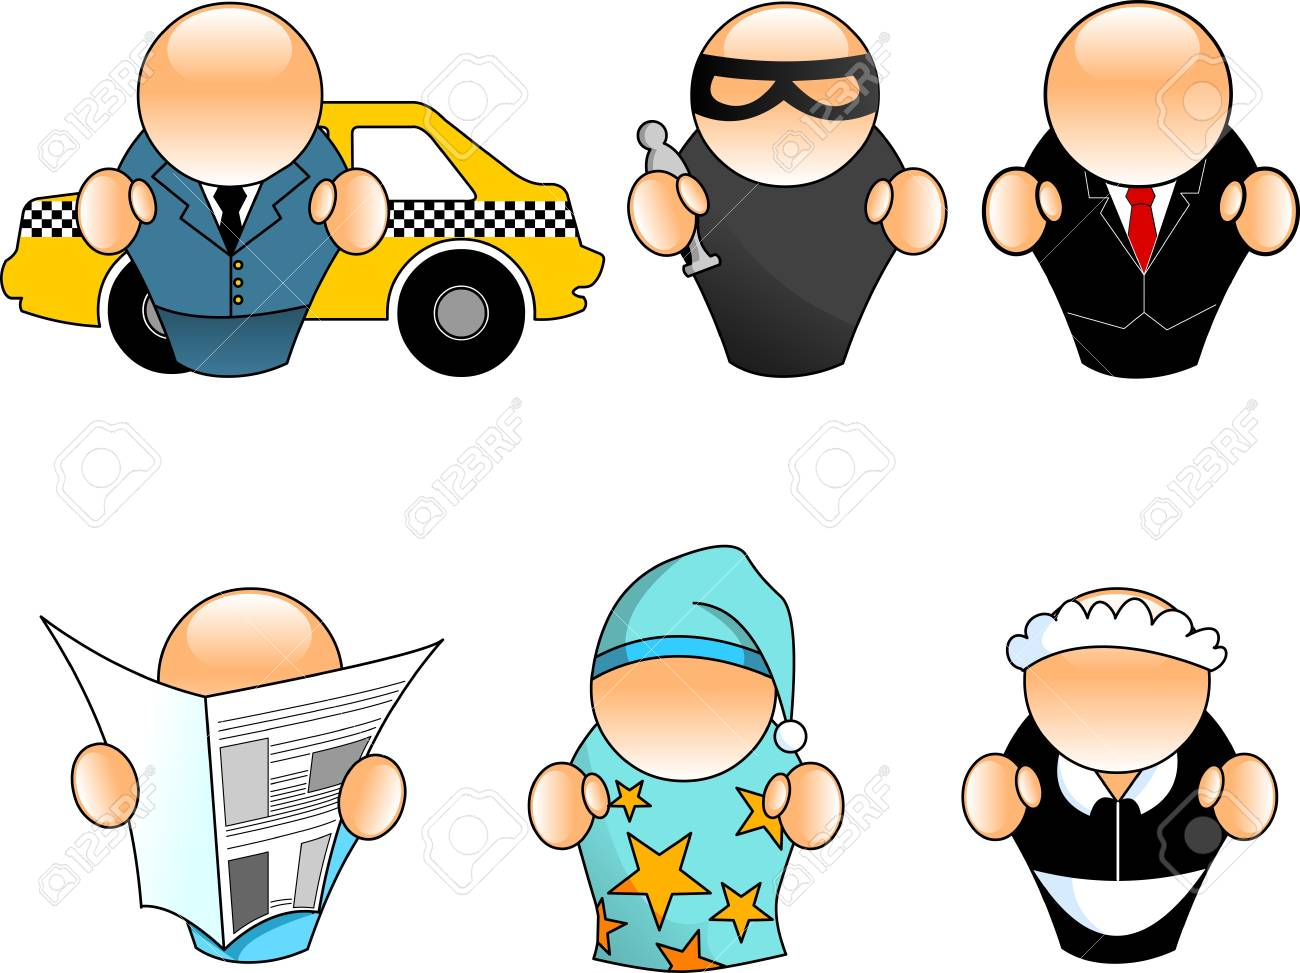 People situation icons Stock Vector - 11664778